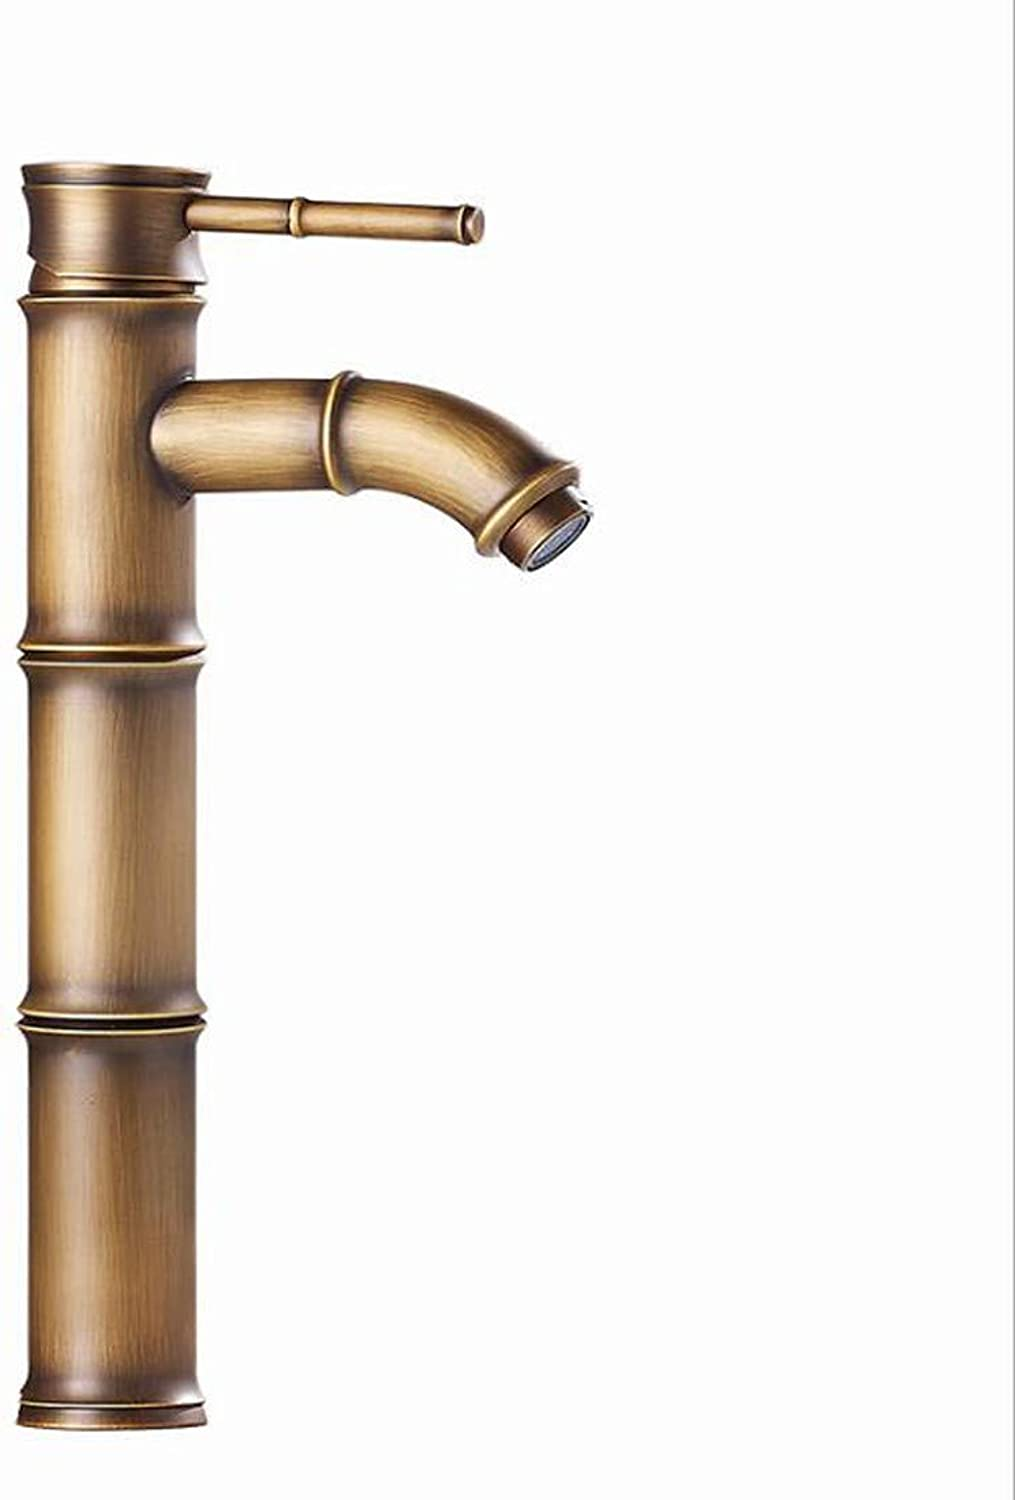 KAIDEFI European Style All Copper Antique Bathroom Basin Faucet Cold And Hot Double Open Mixing Tap Creative Bamboo Sink Faucet Single Lift Lift Retro Faucet